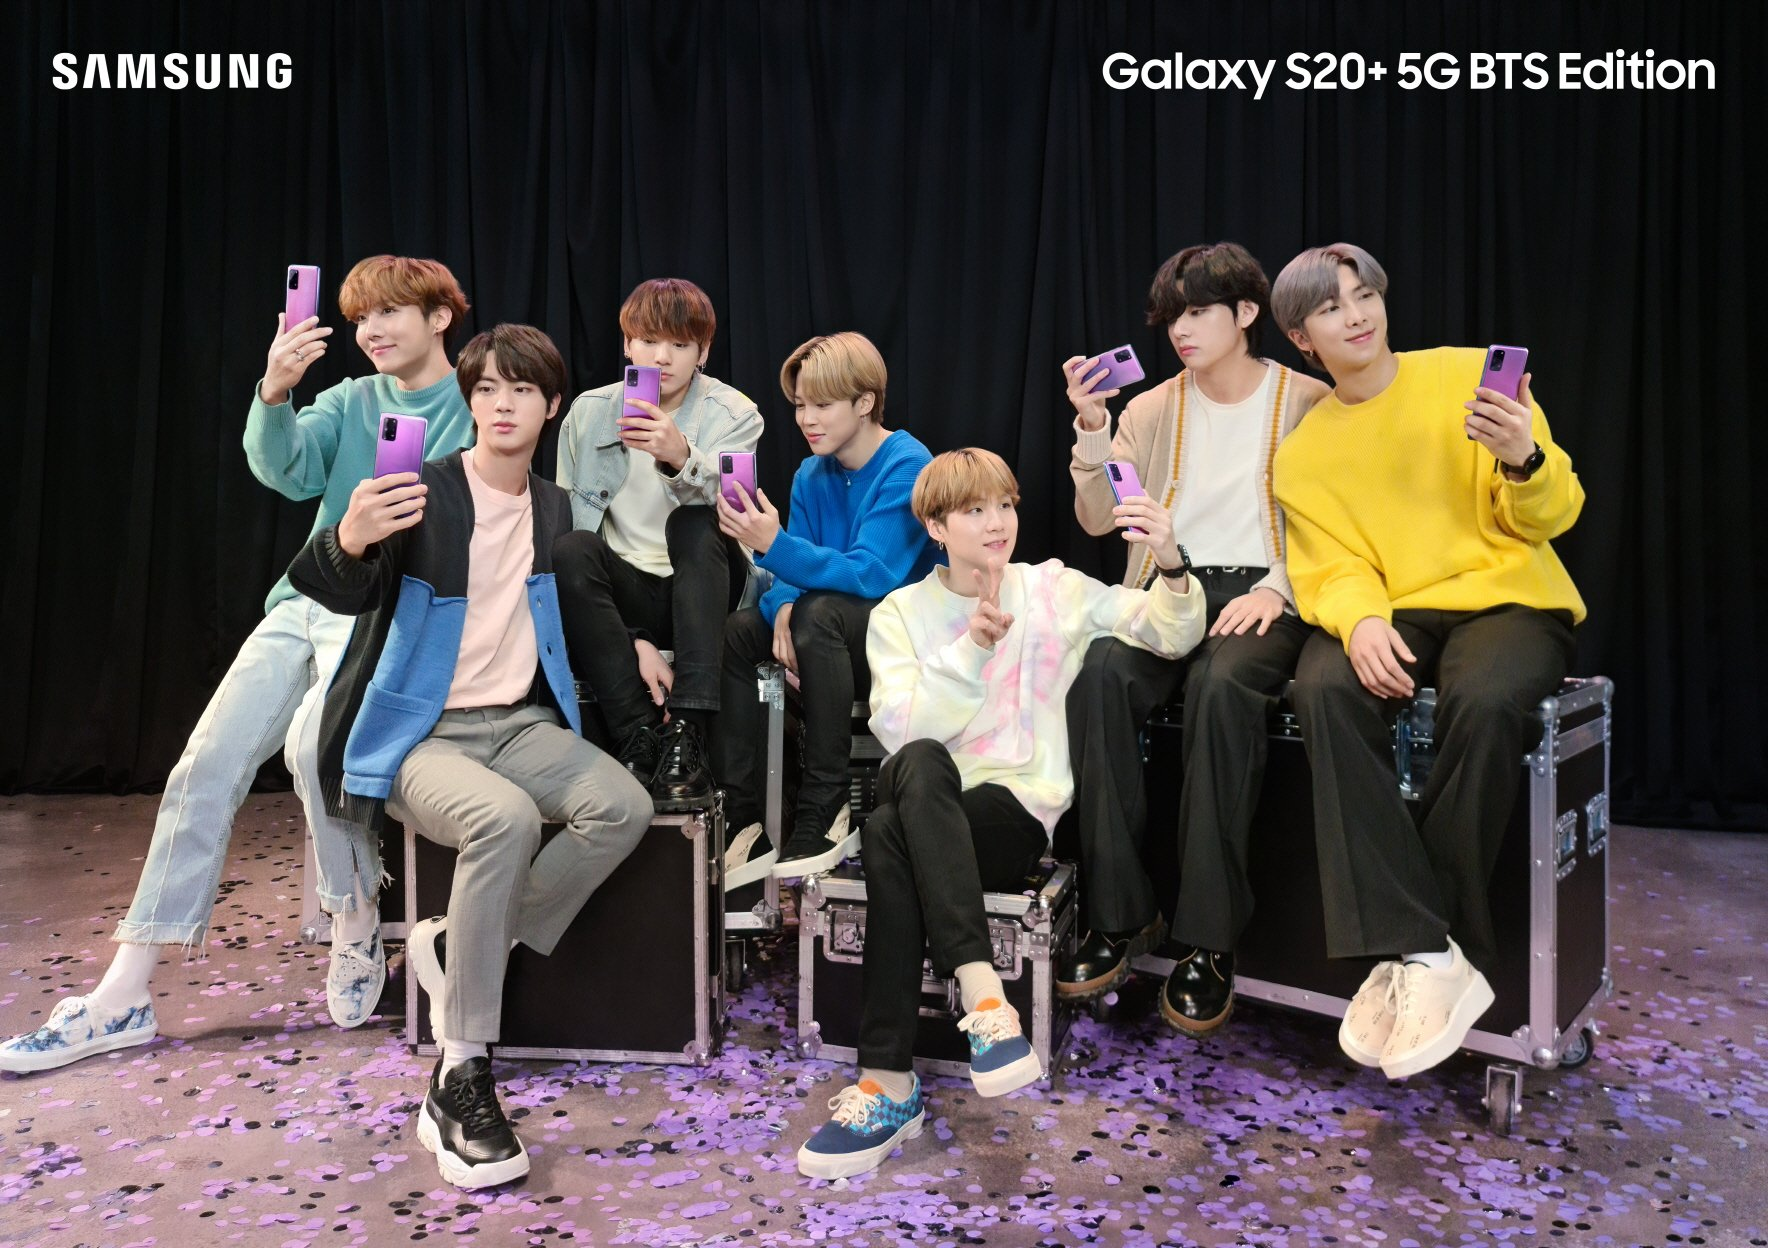 Samsung Unveils Bts Themed Galaxy S20 And Galaxy Buds Sammobile